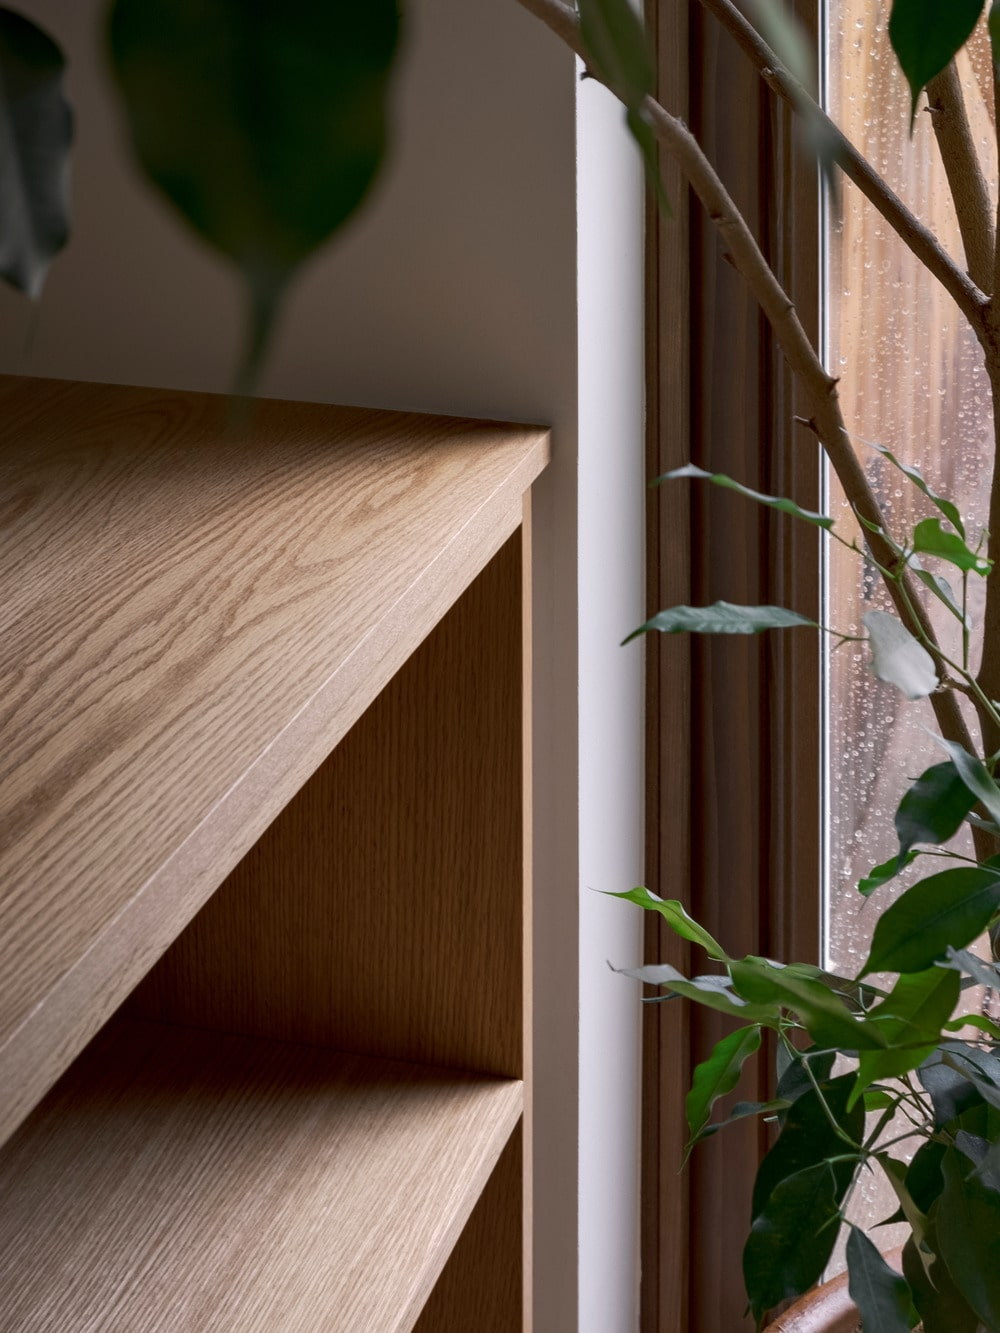 This is the very edge of the wooden structure that extends from the living room to the dining area.